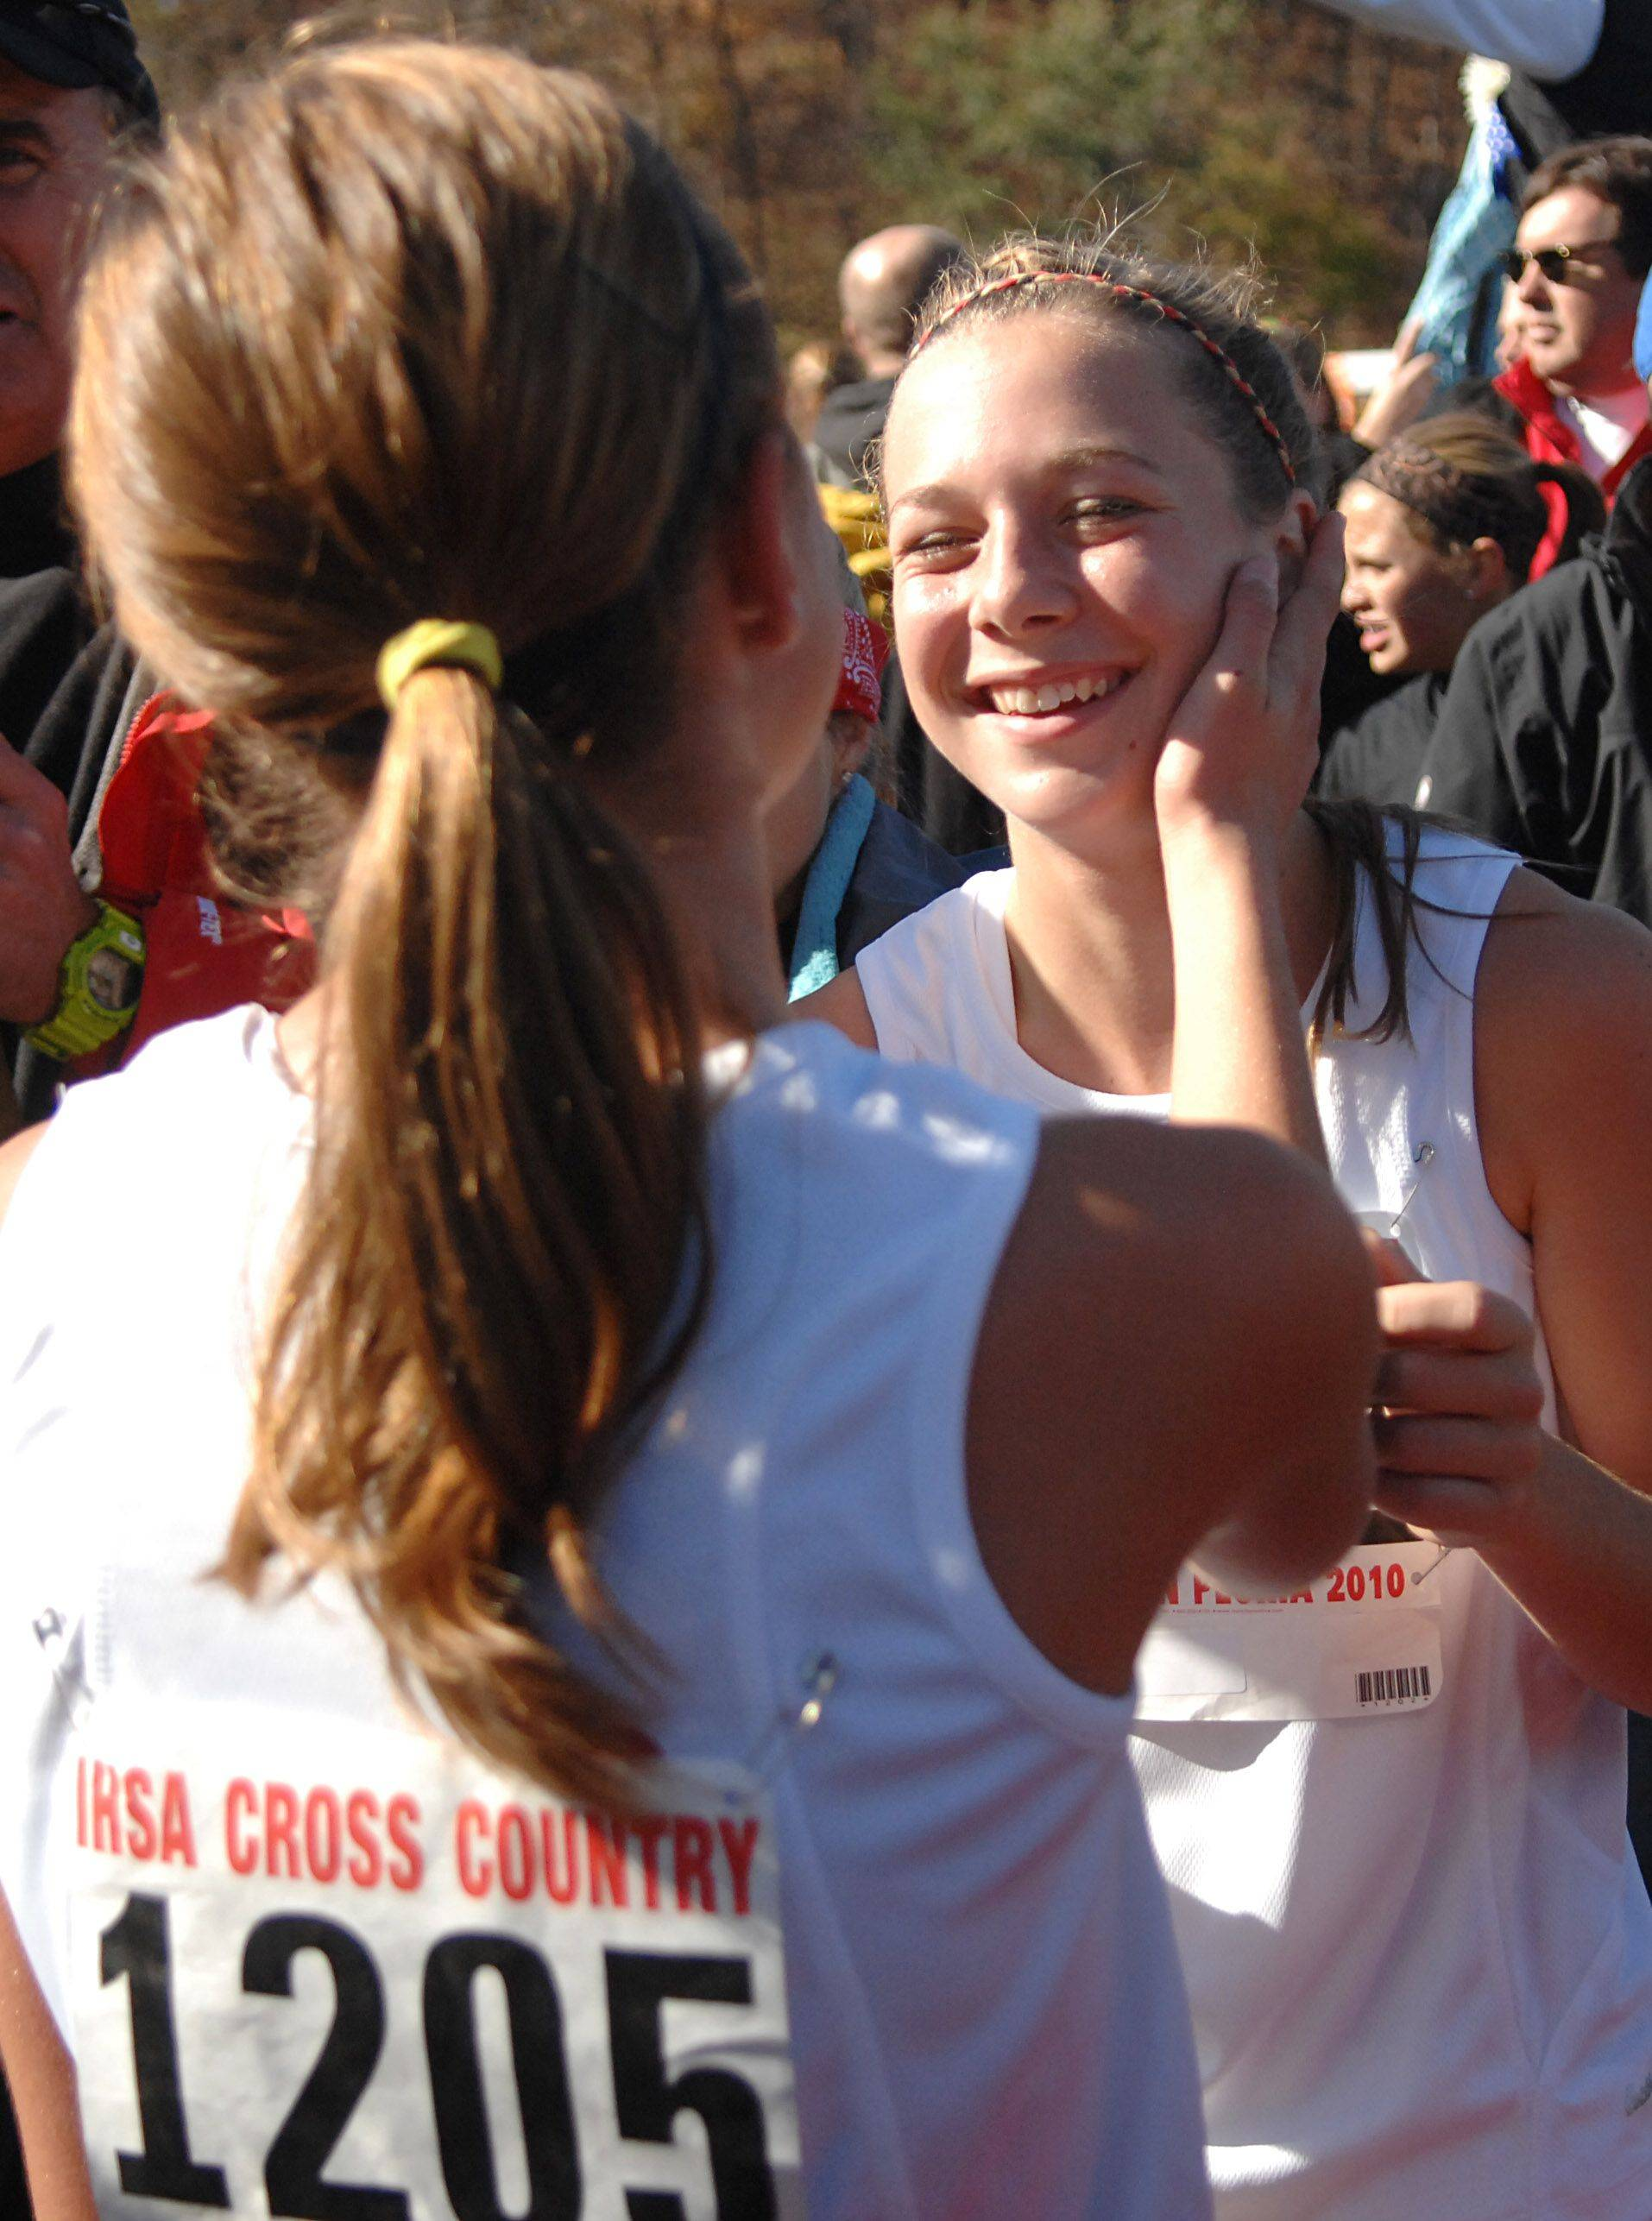 Barrington's Sarah Miller, left, and teammate Rebecca Batliner congratulate each other after the 3A class run at the state cross country state in Peoria on Saturday, November 6. Batliner took 10th place.